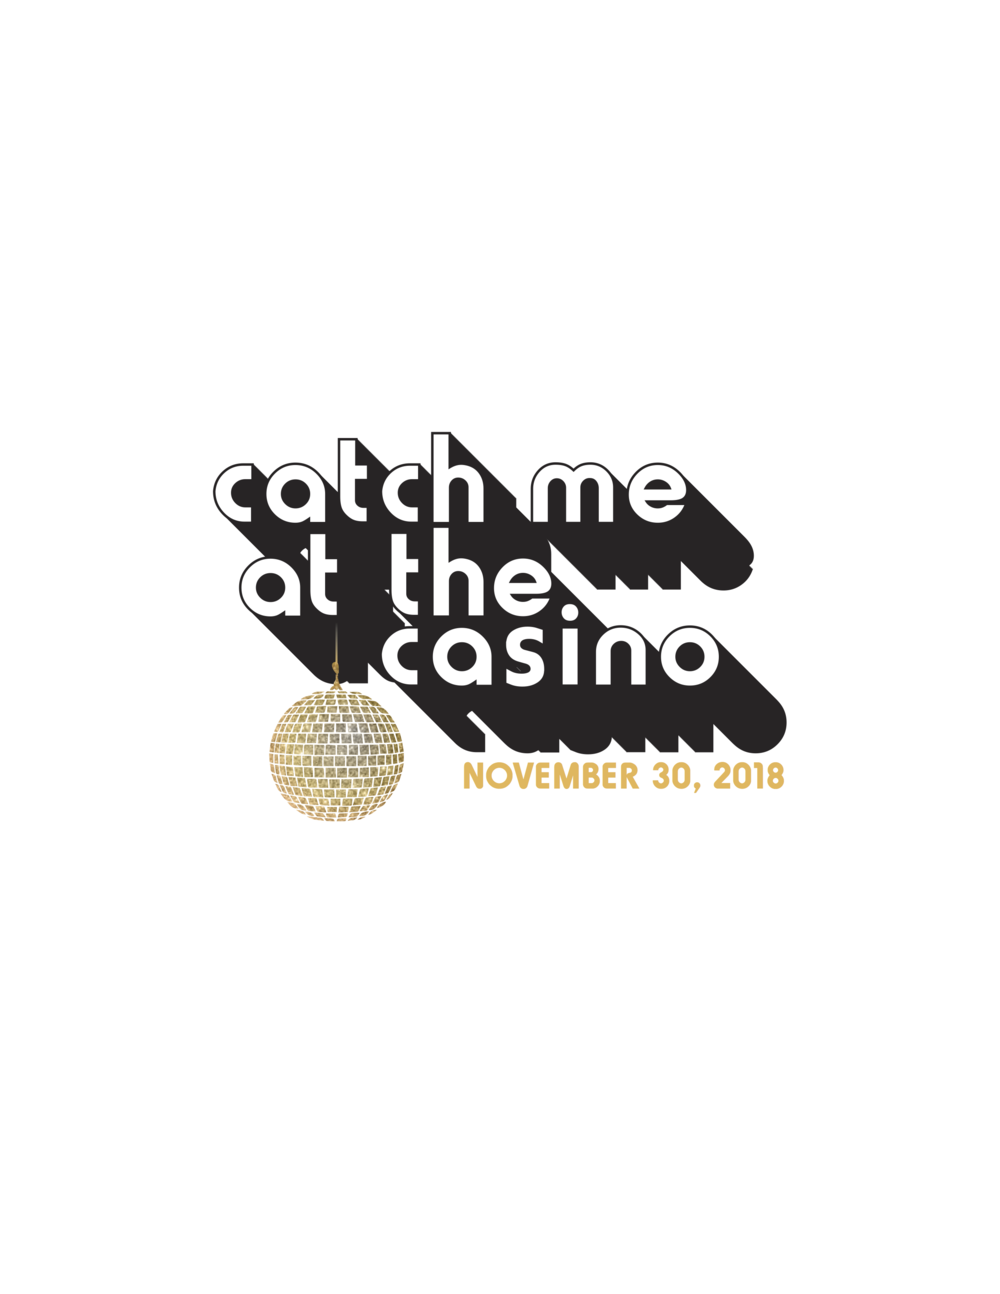 Catch me at the casino Logo (PNG).png